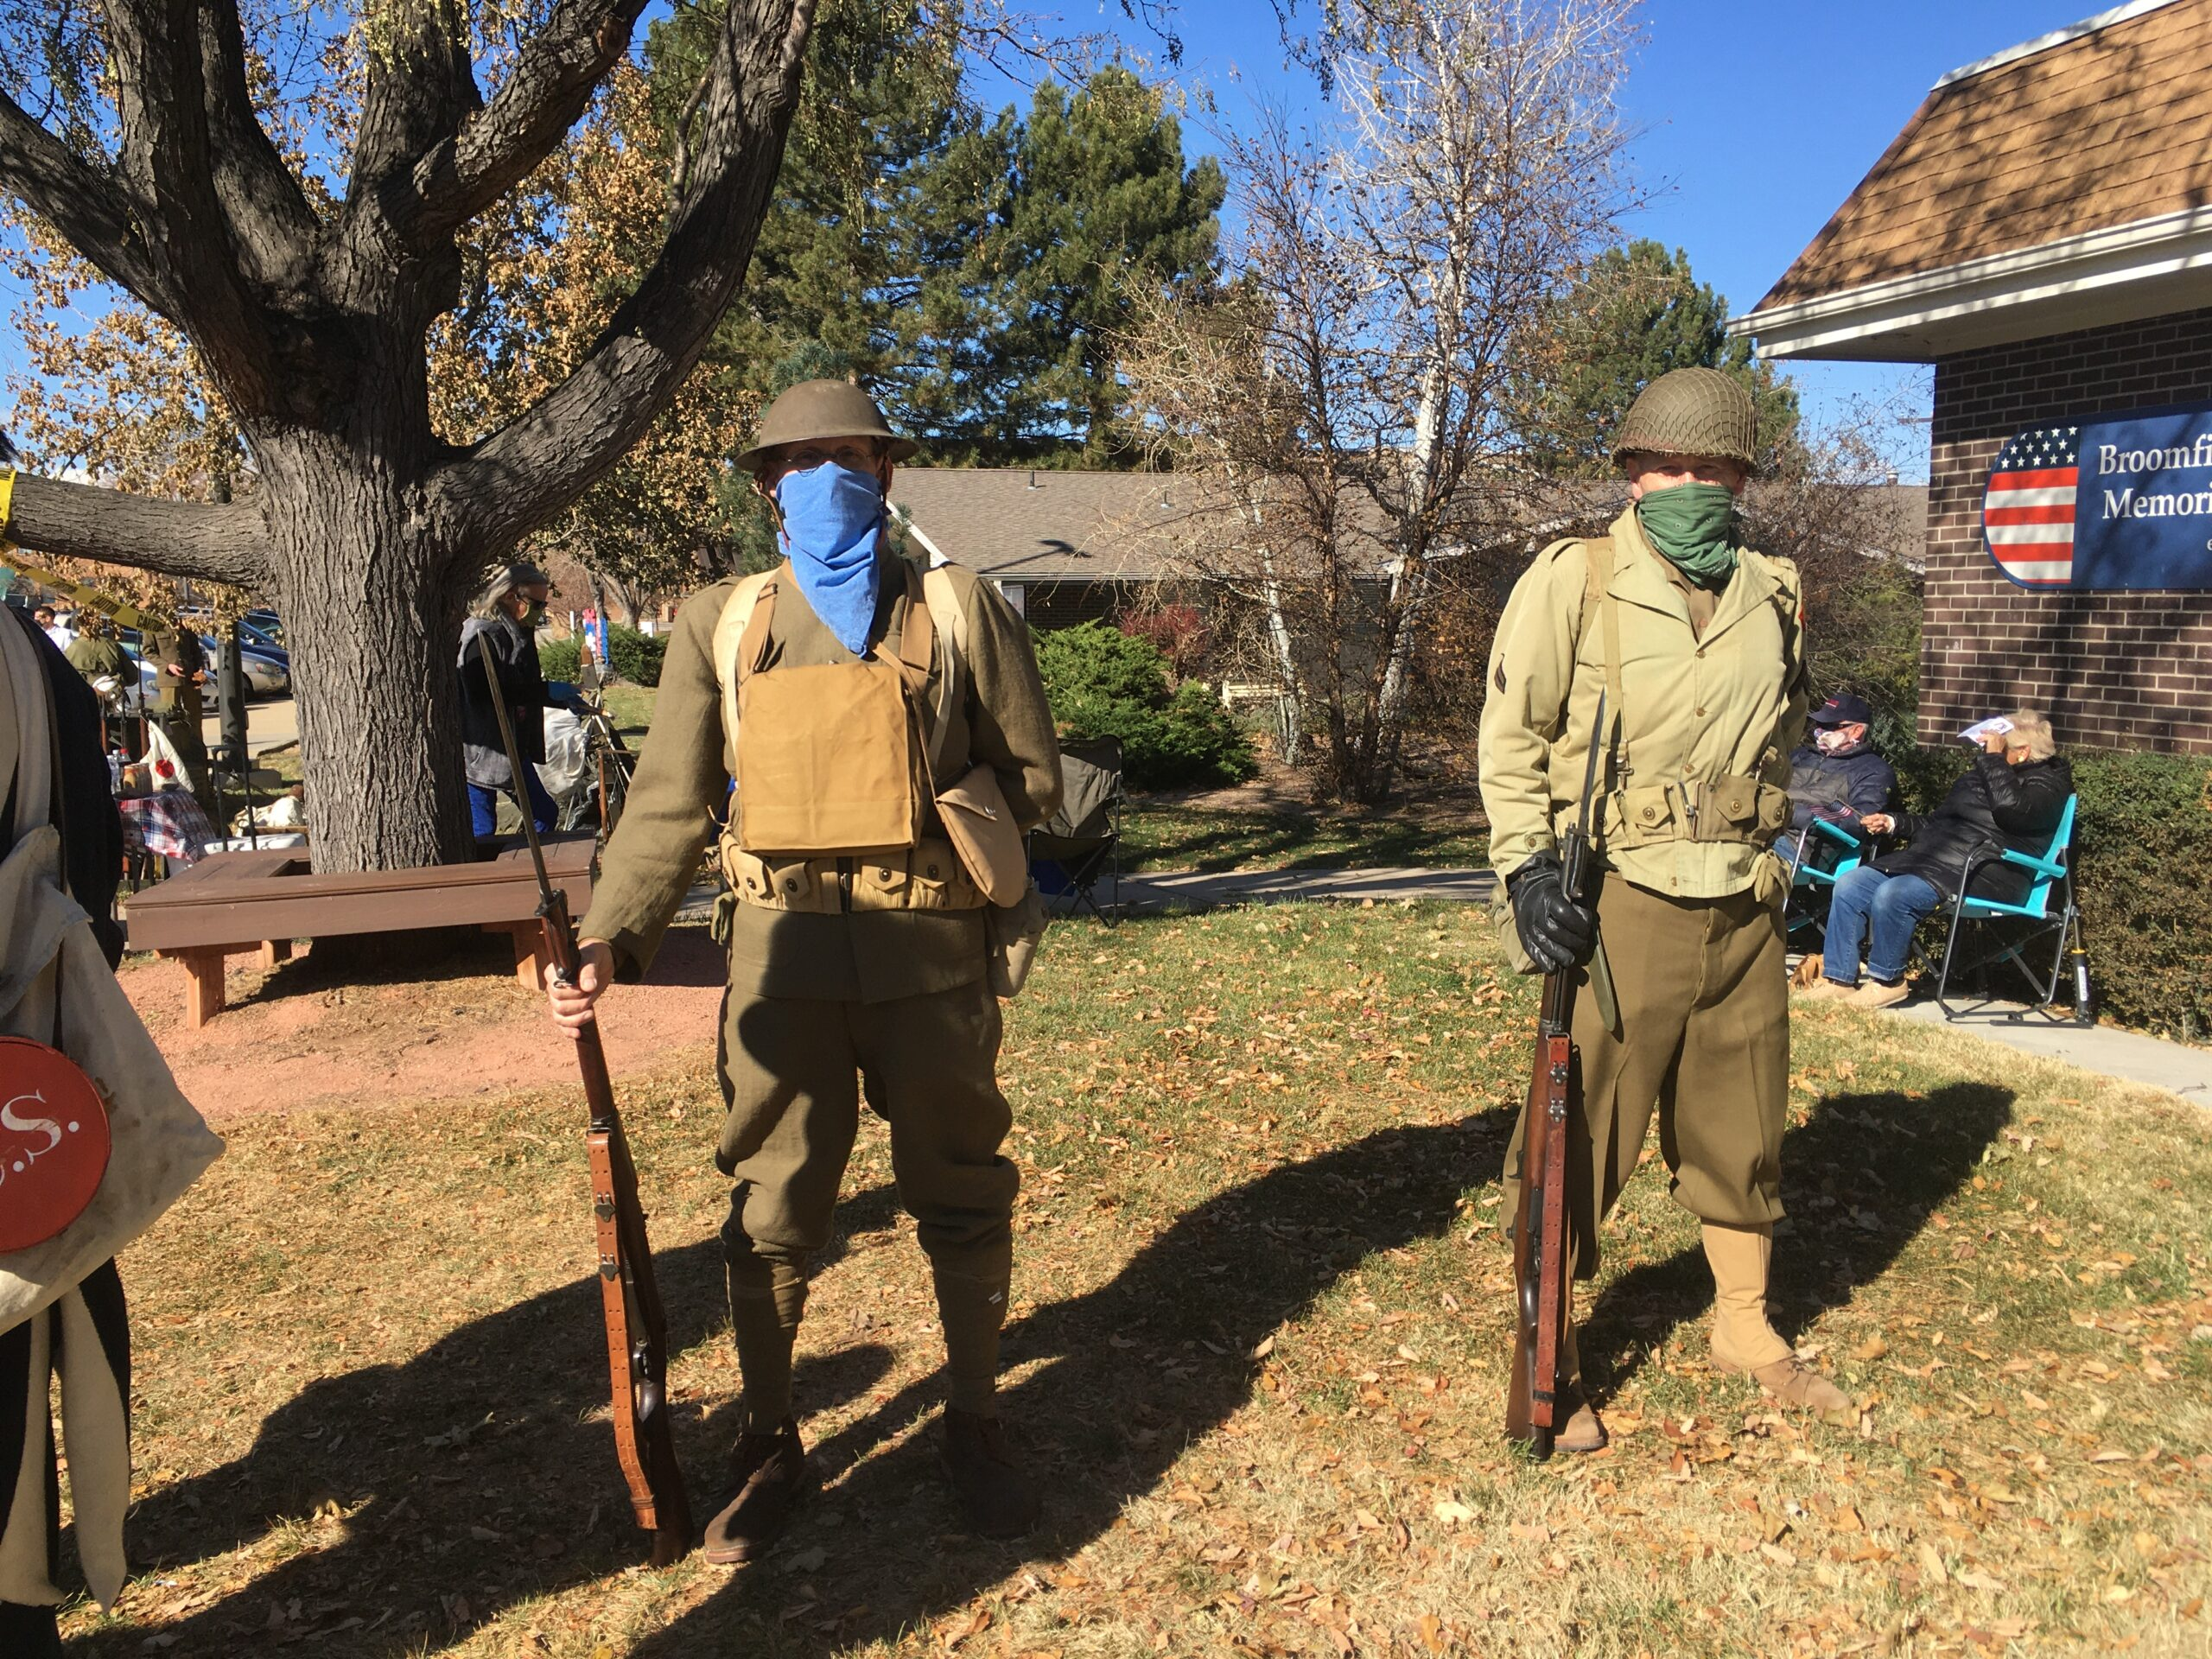 Veteran's Day 2020 Ceremony at the Broomfield Veterans Museum. Two WWI Reenactors stand ready at museum entrance.